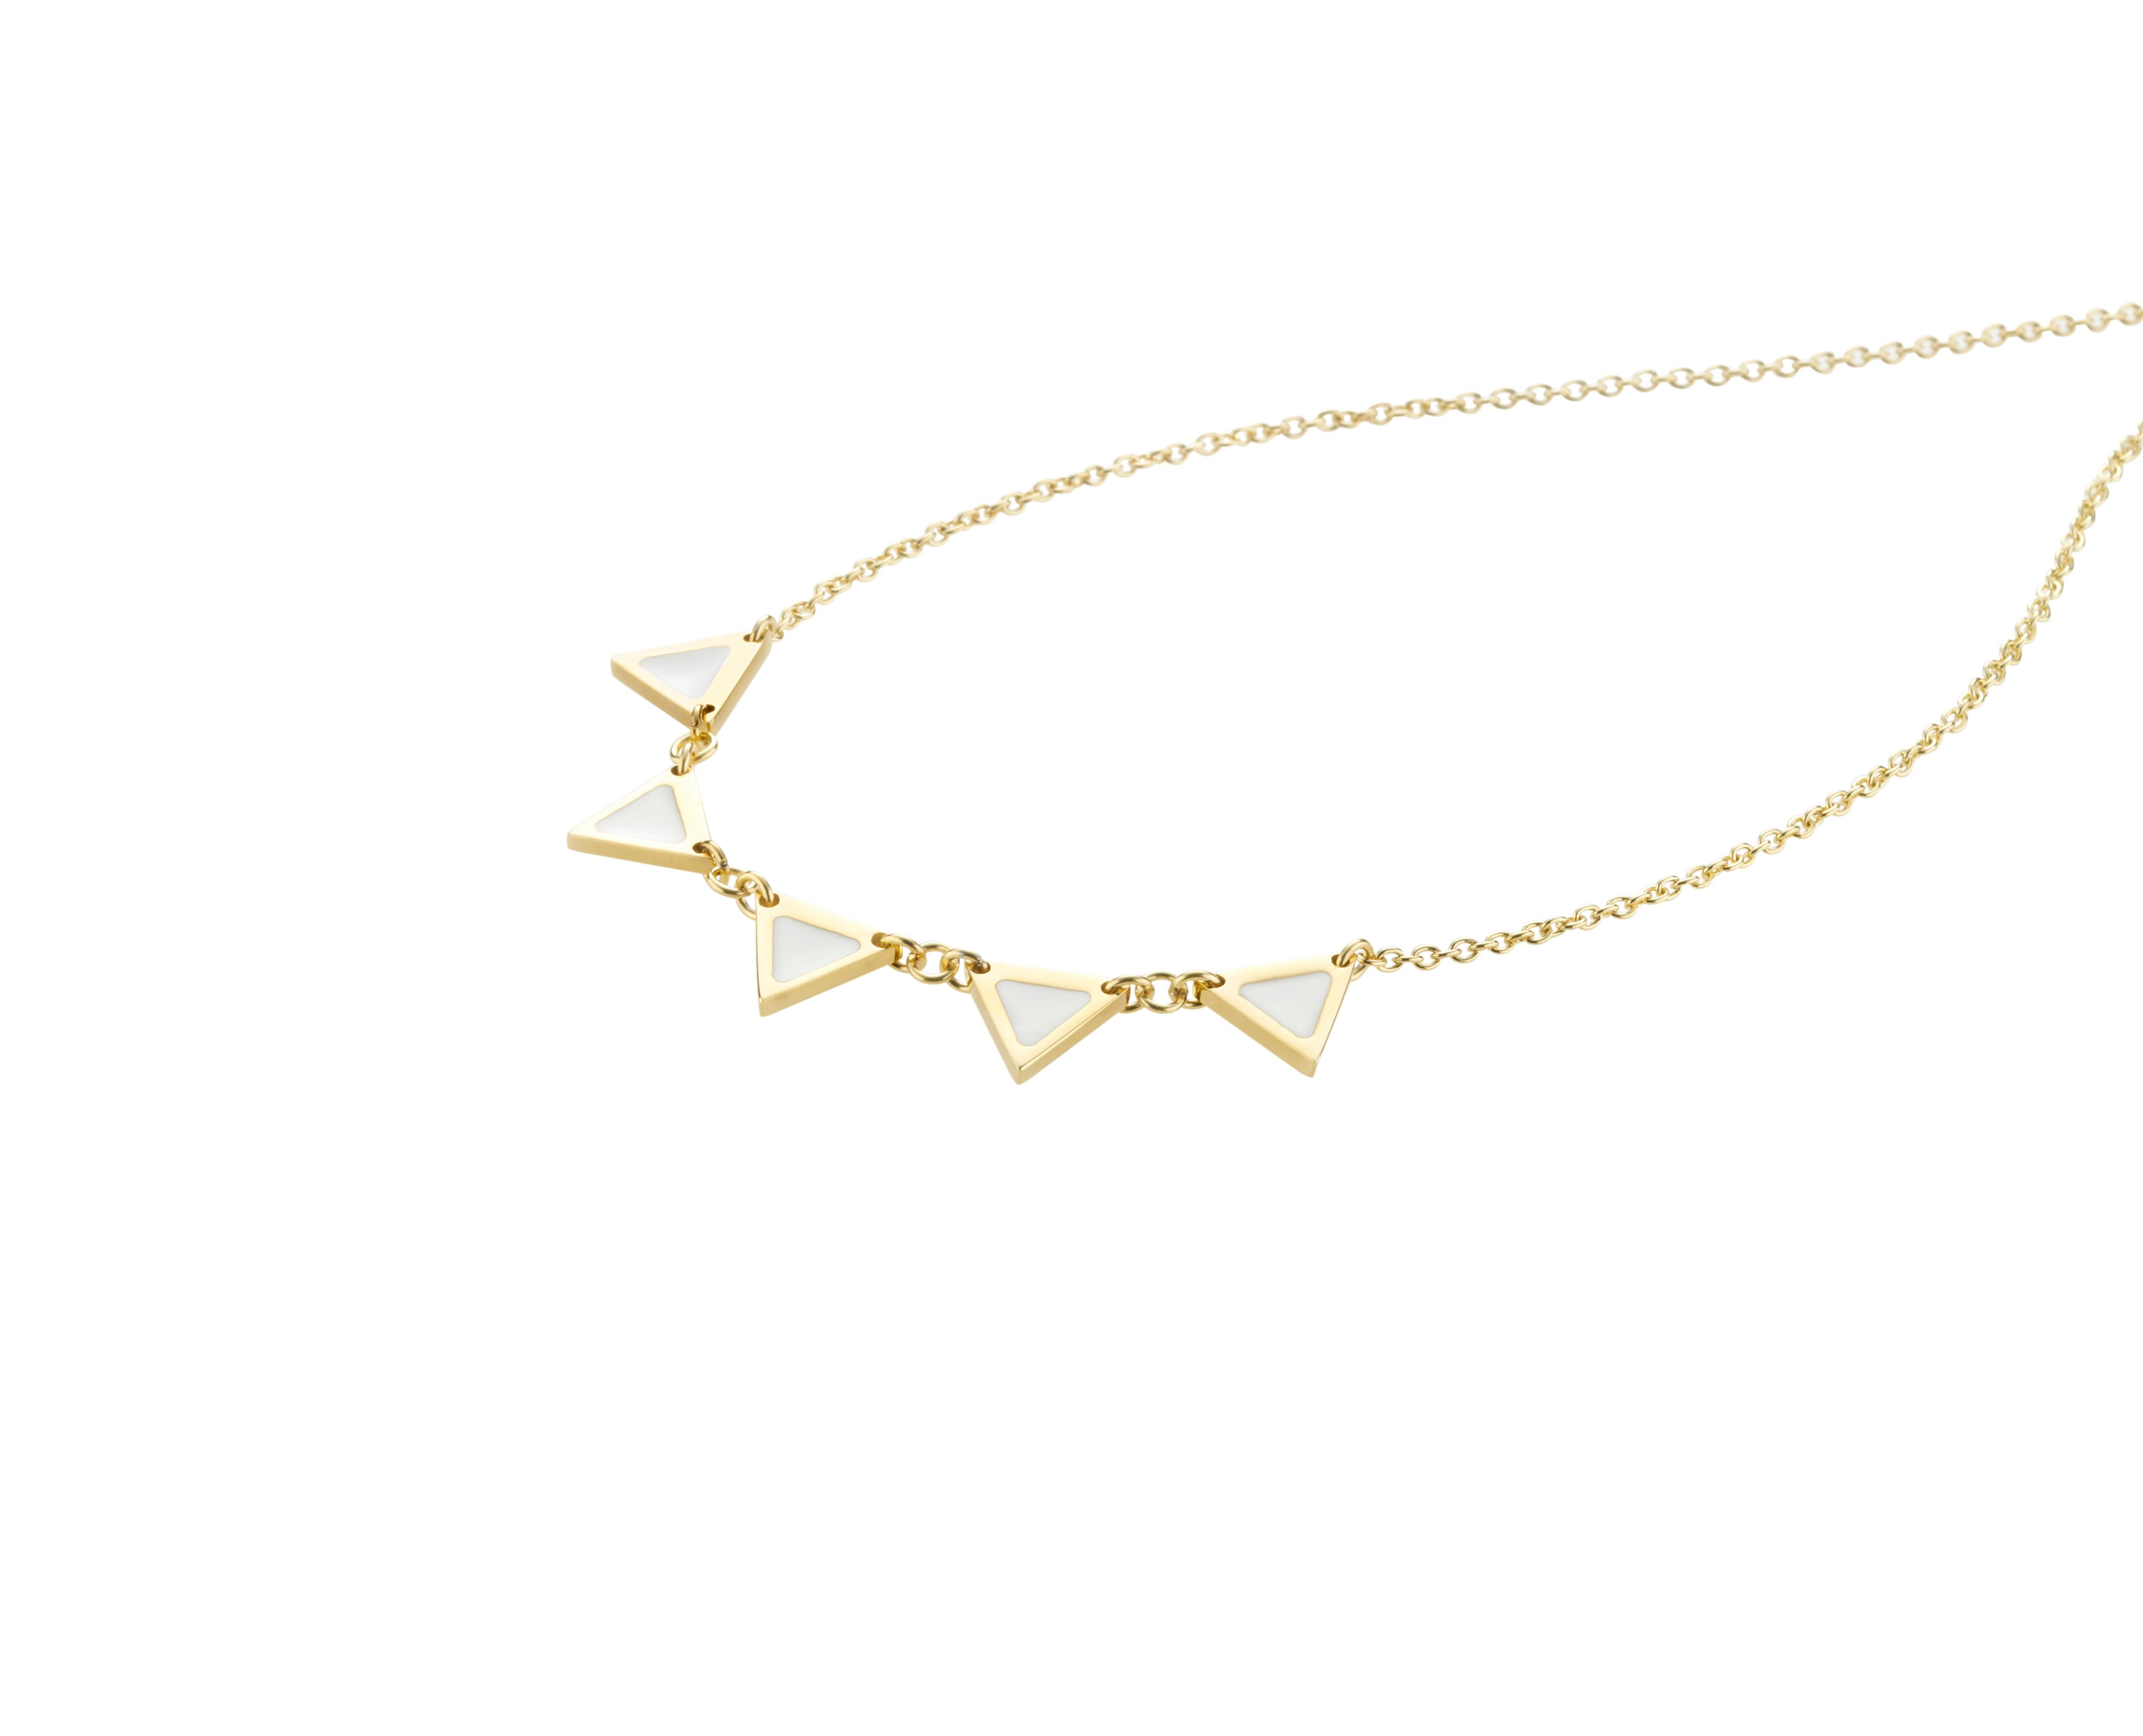 Enamelli necklace gold